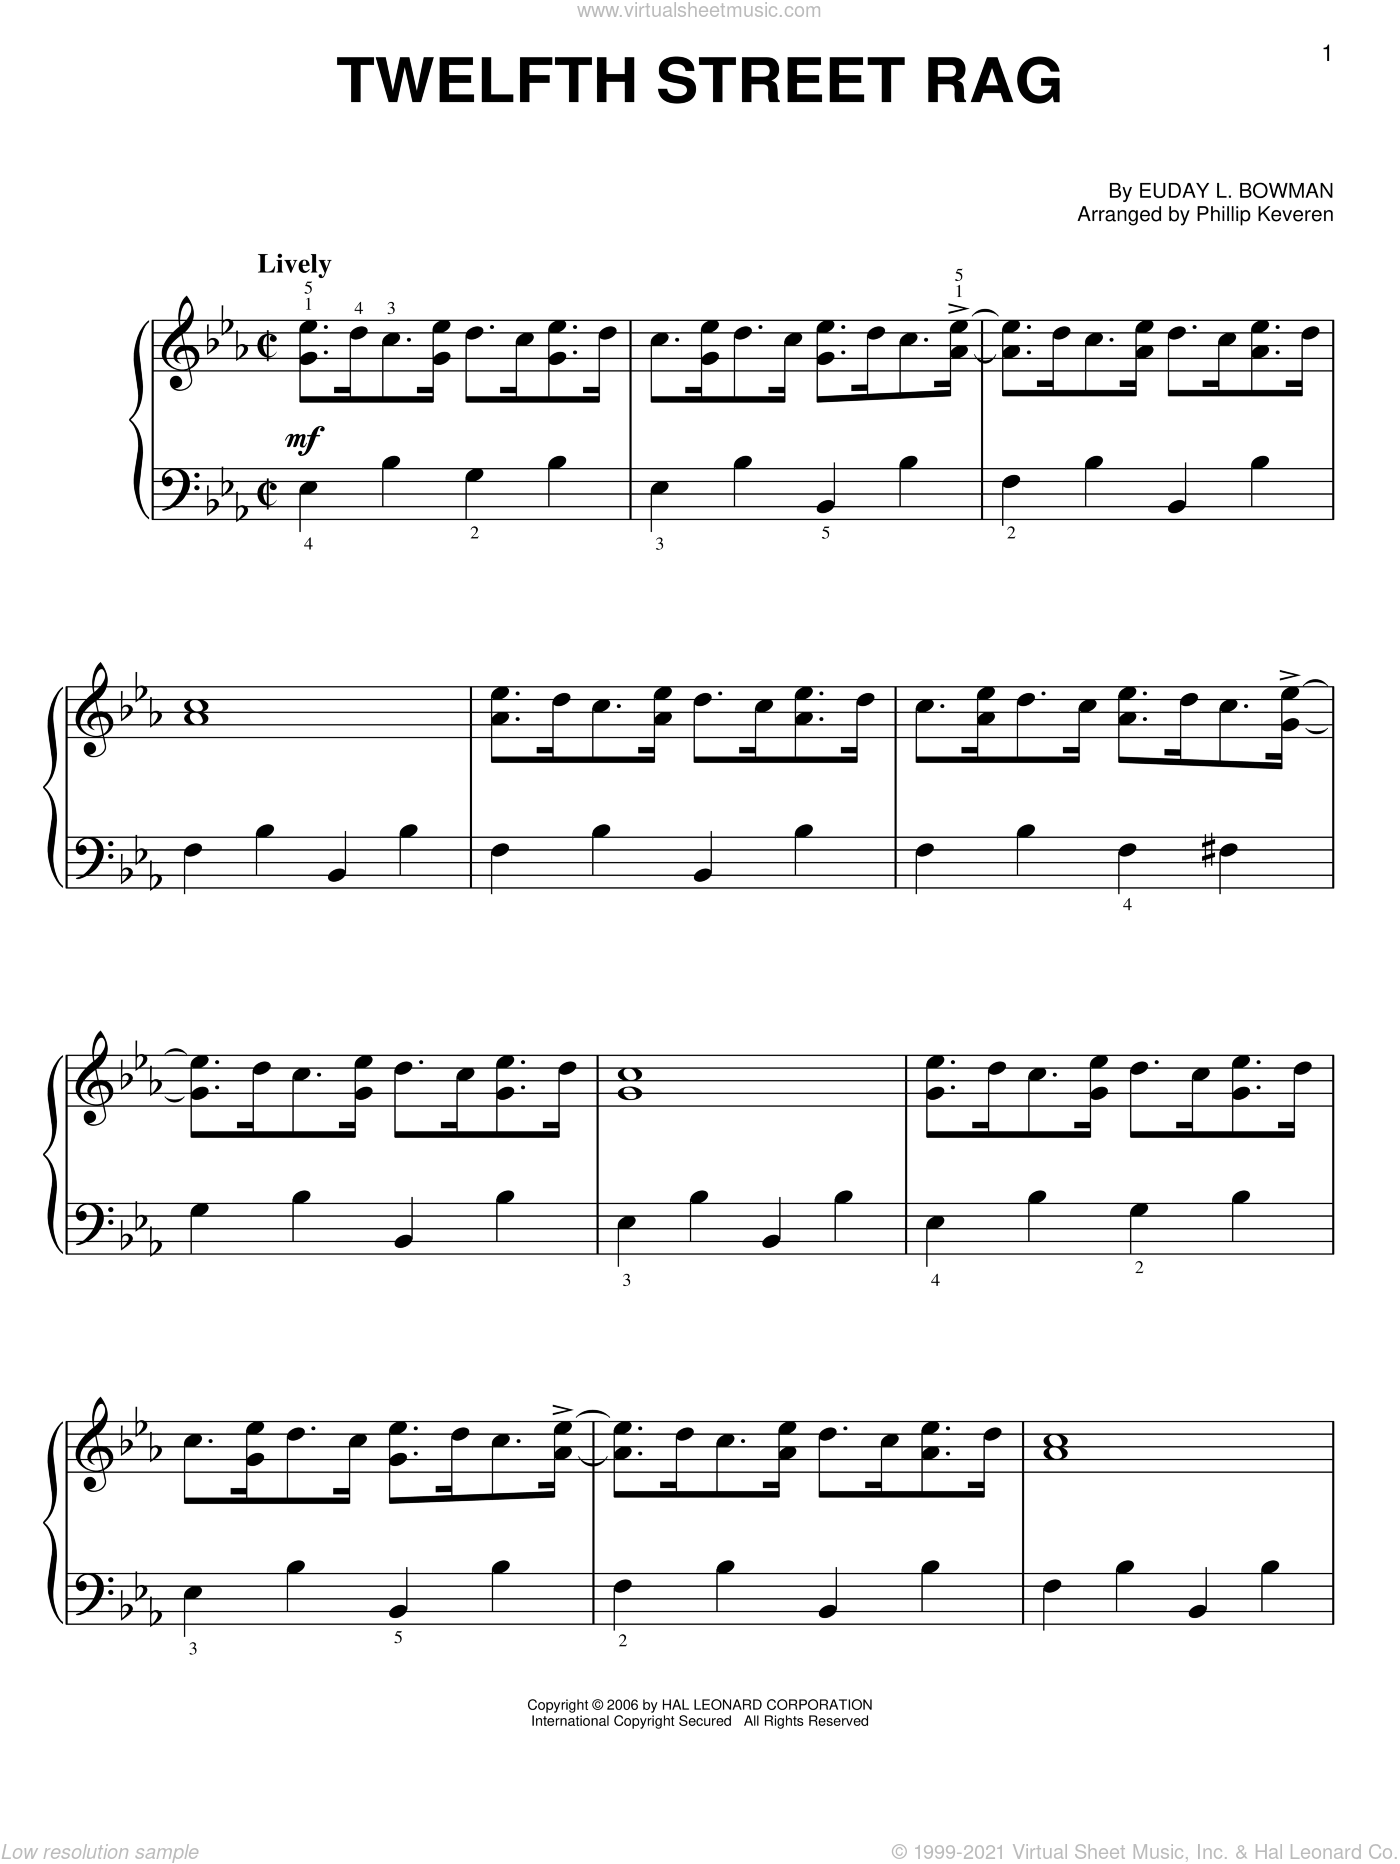 Twelfth Street Rag sheet music for piano solo (chords) by Euday L. Bowman